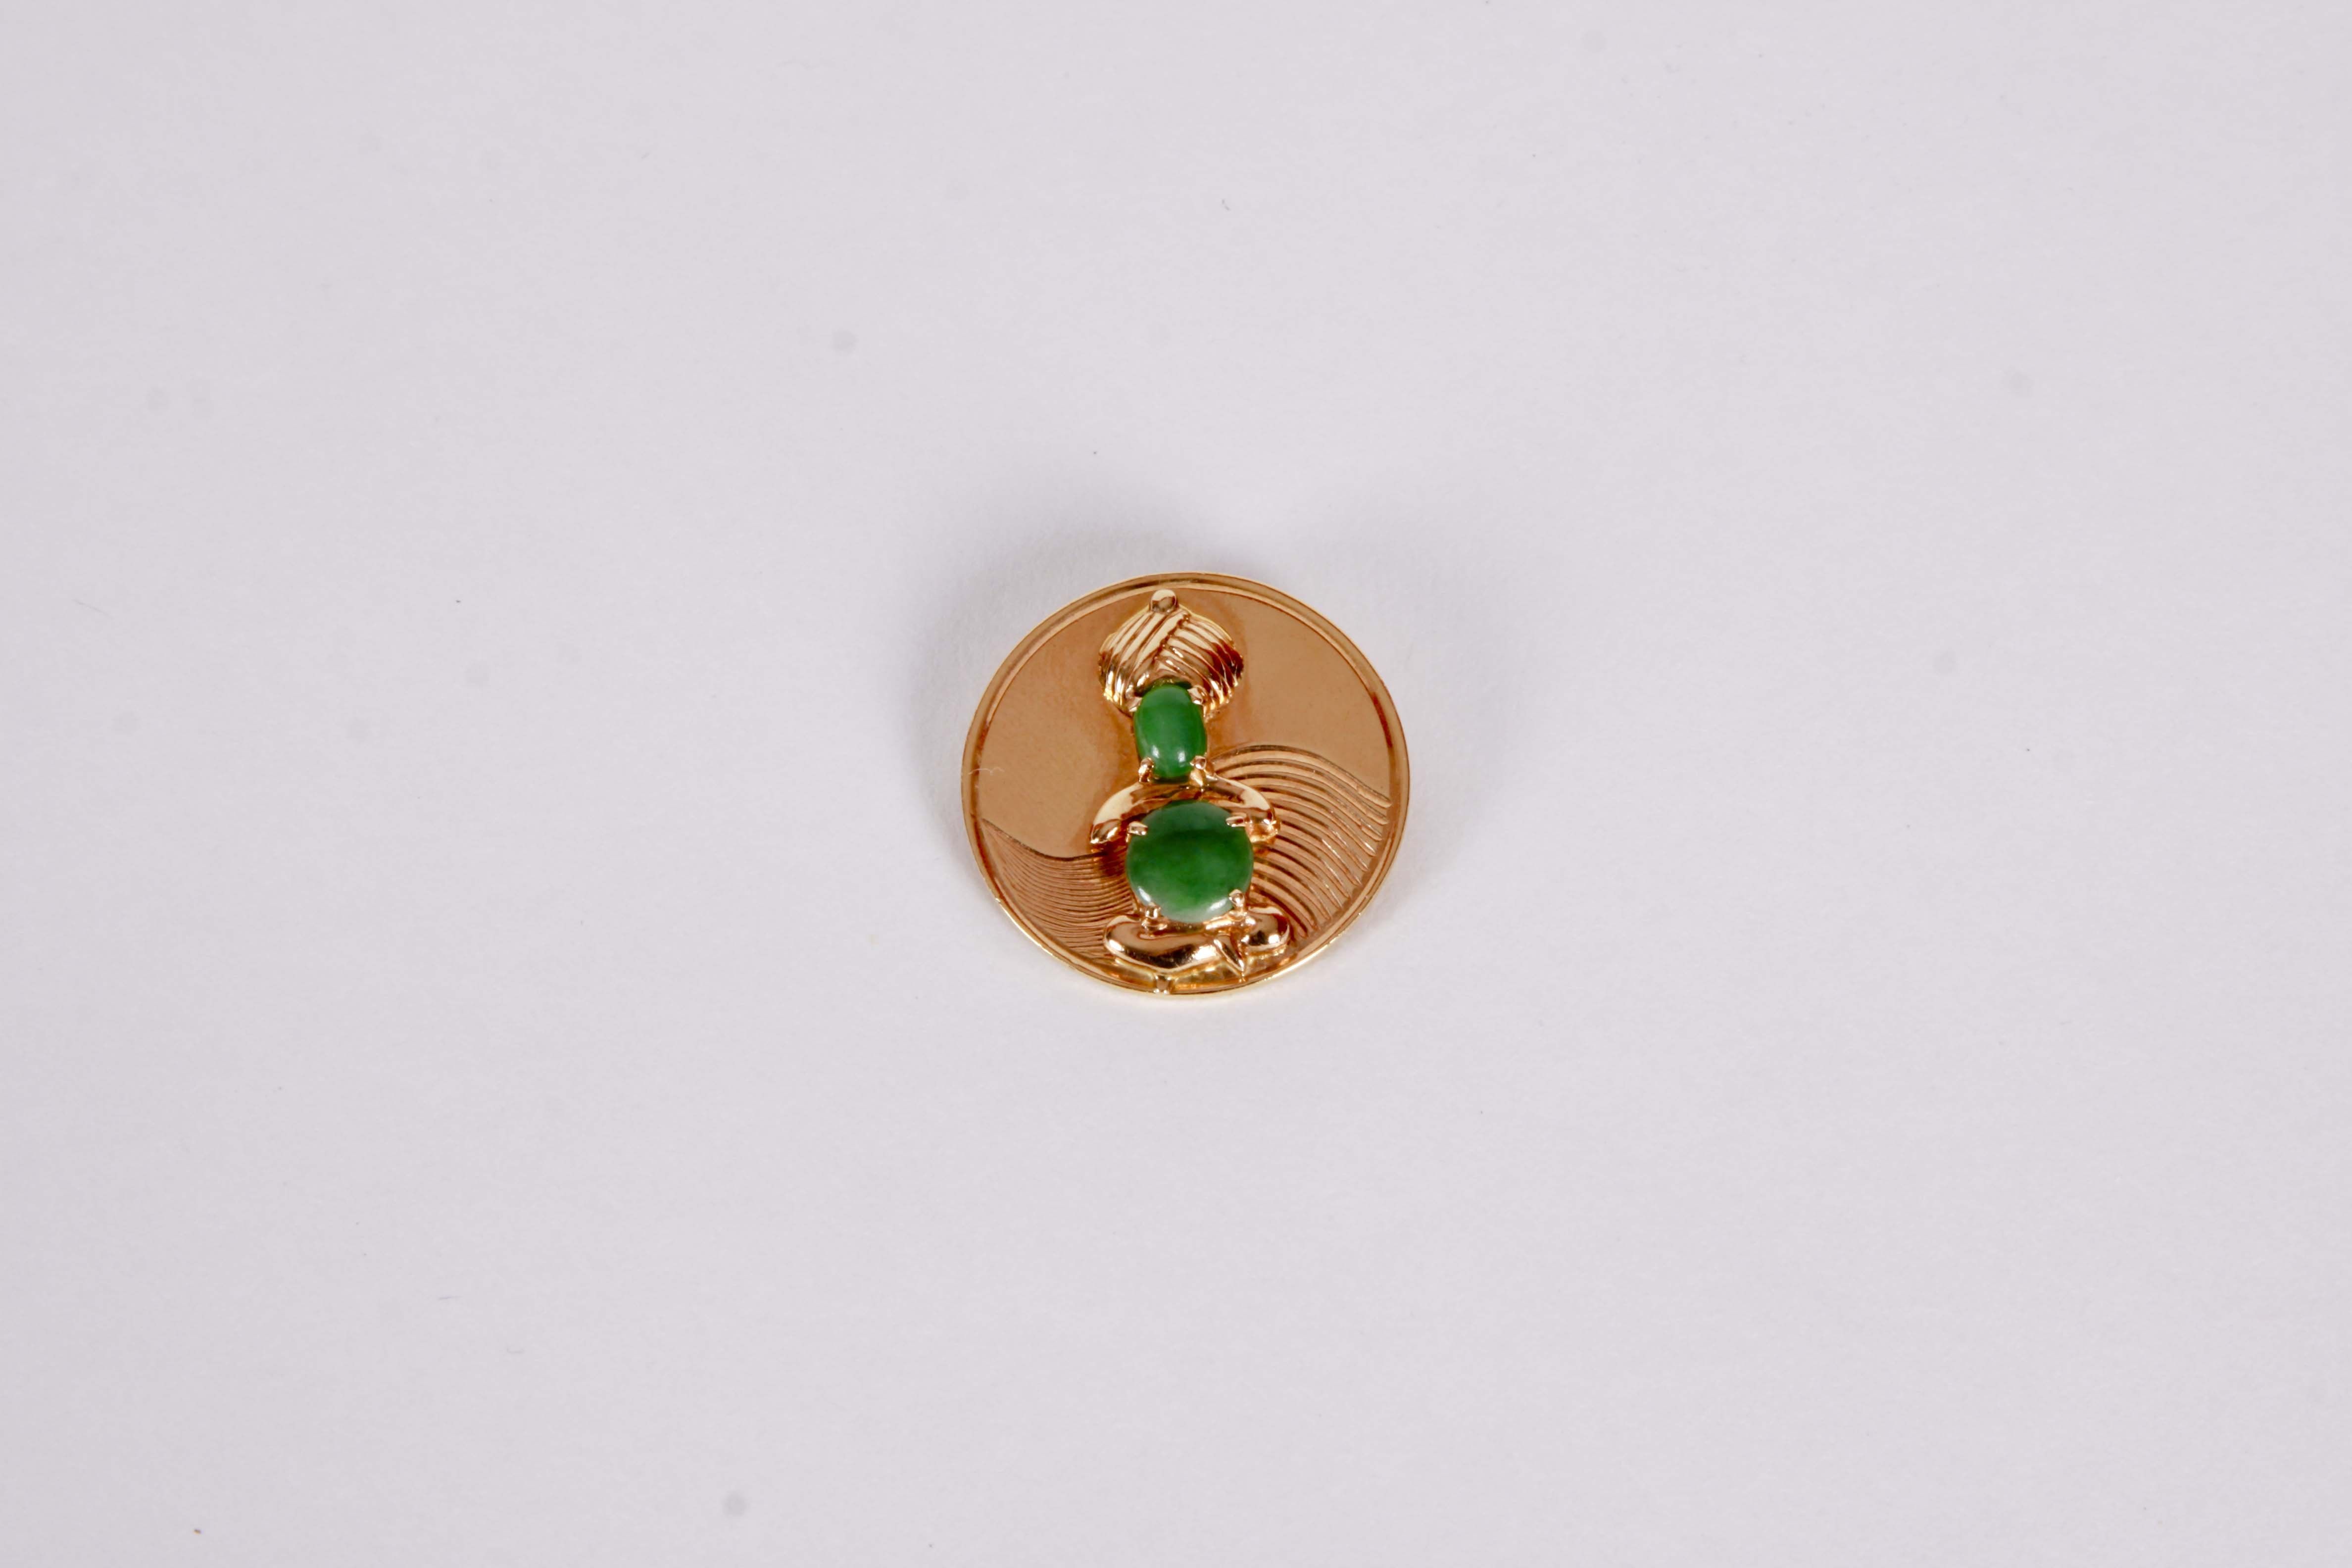 14k Yellow Gold and Jadeite  Brooch